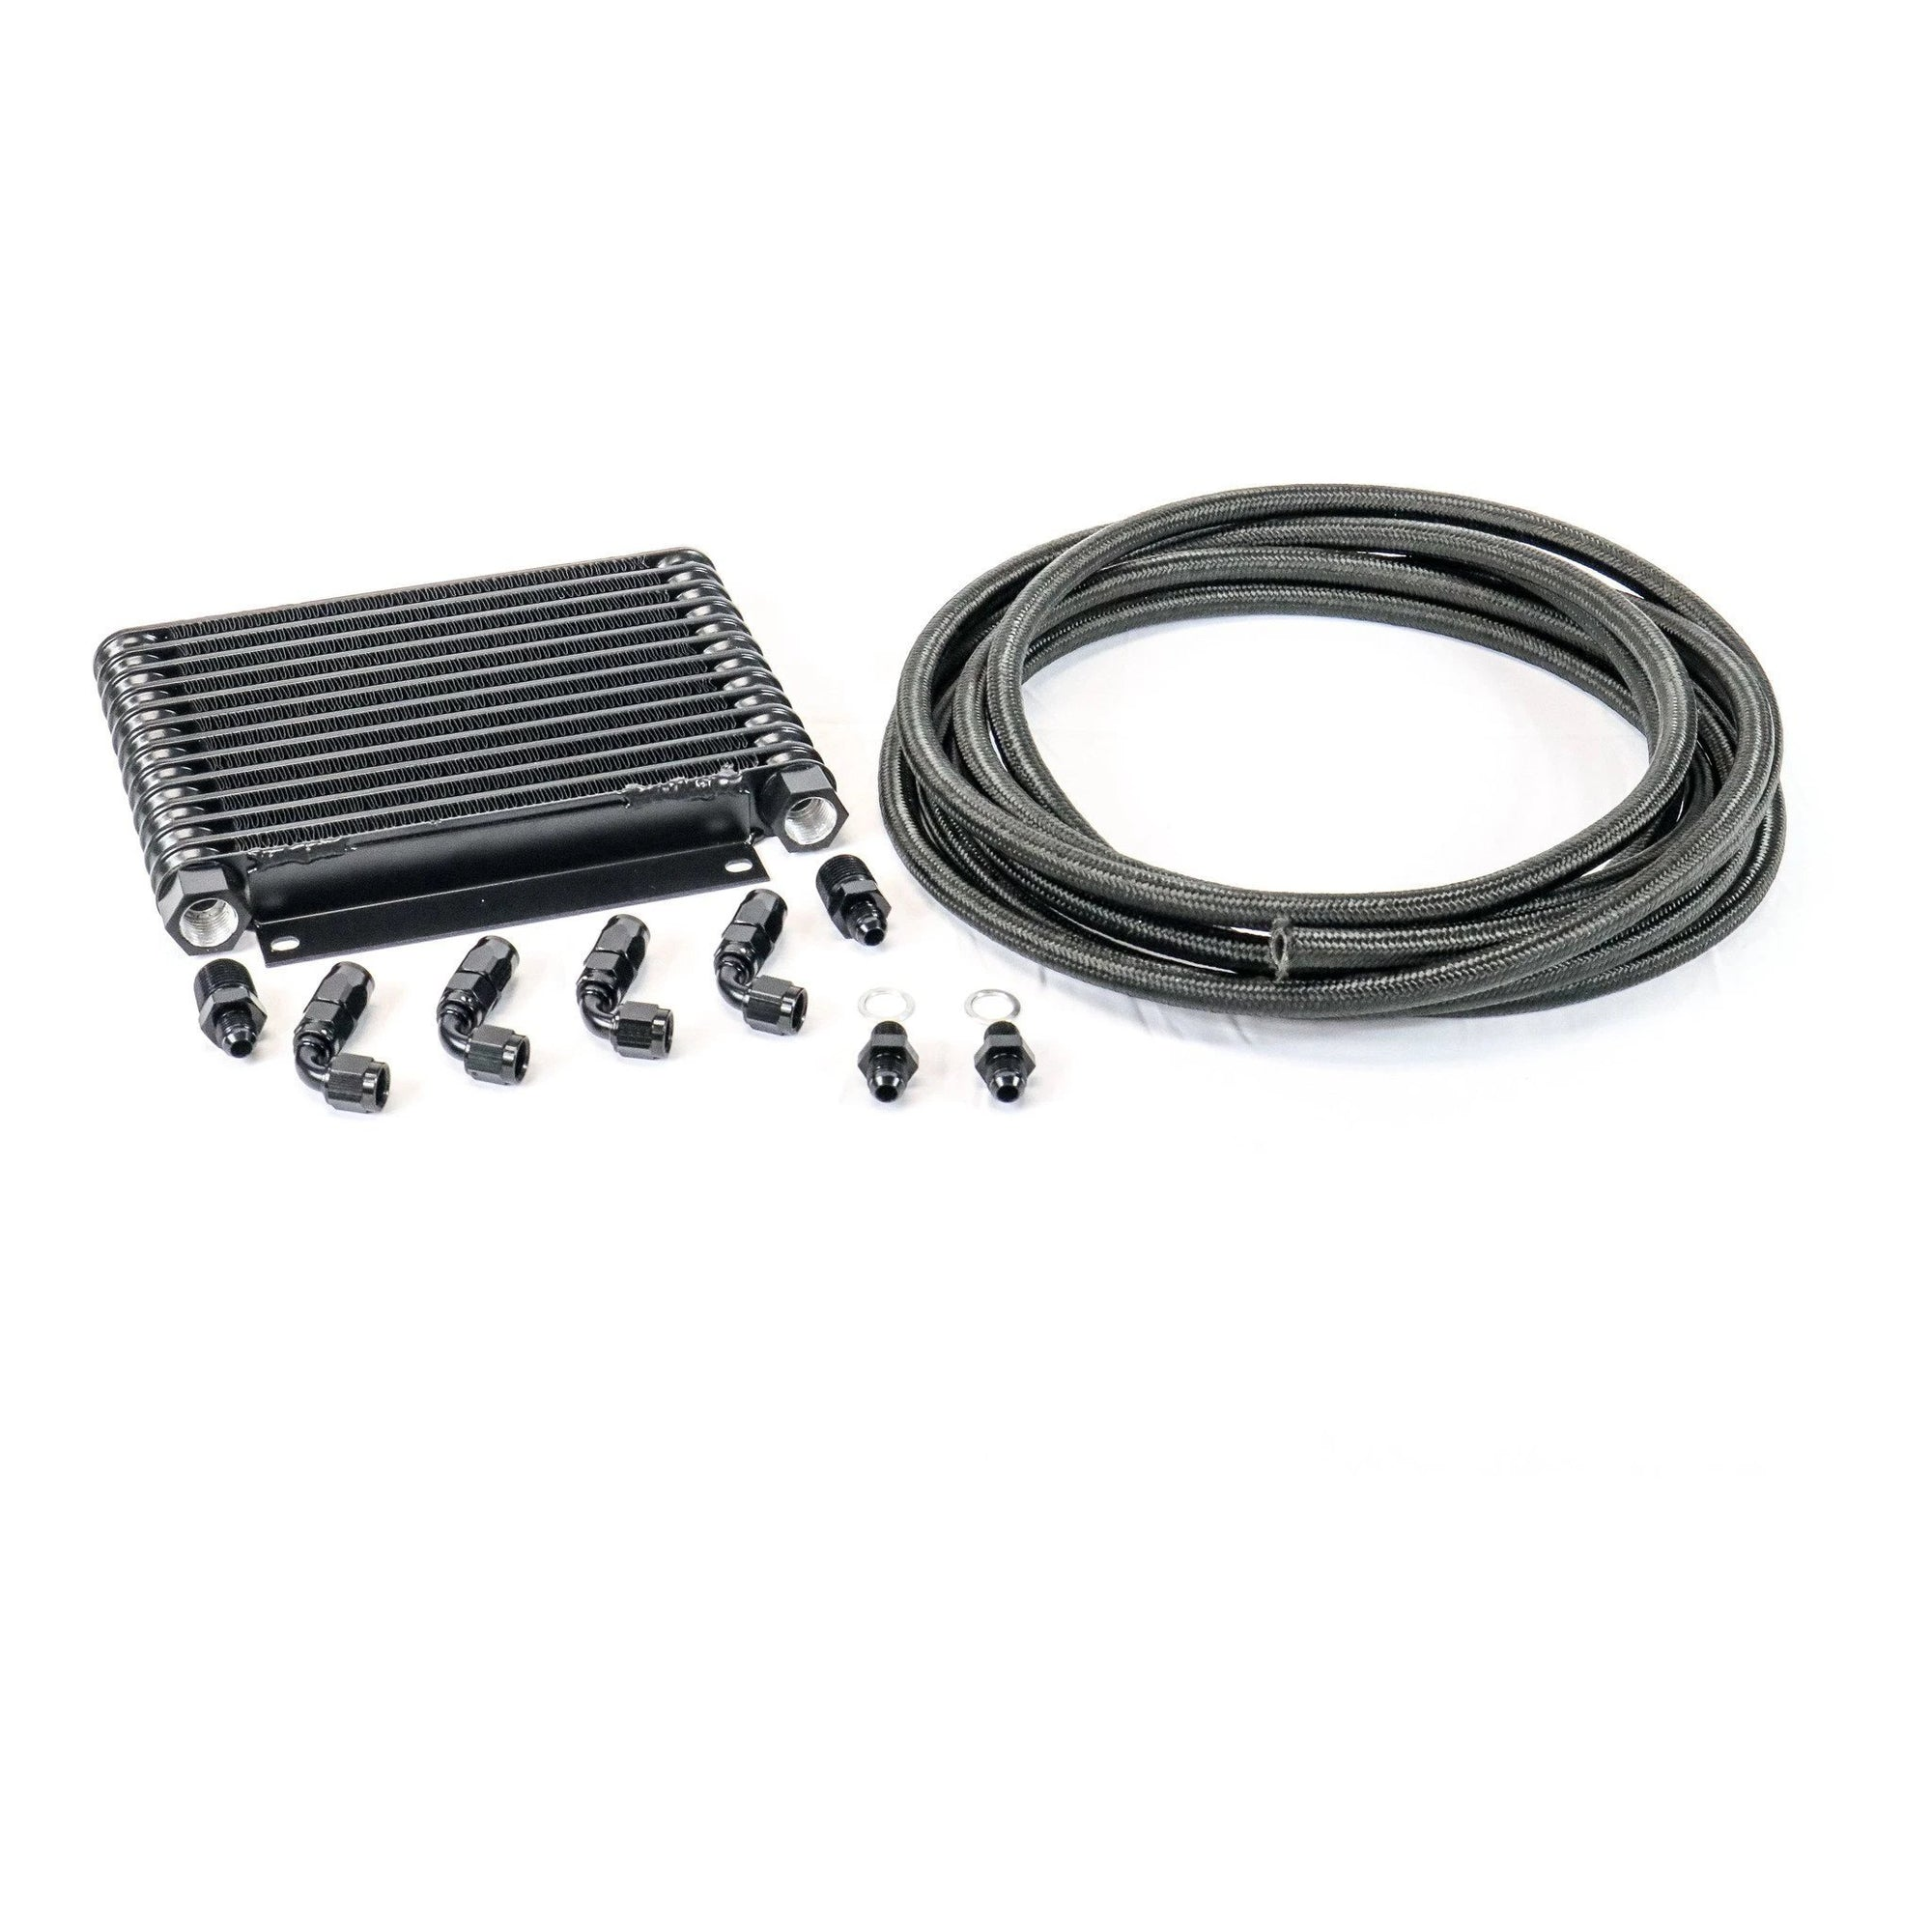 GM TH350, TH400, 700R4, 4L60E Derale Trans Cooler Kit w/Fragola Lines/Fittings-Kit-Motion Raceworks